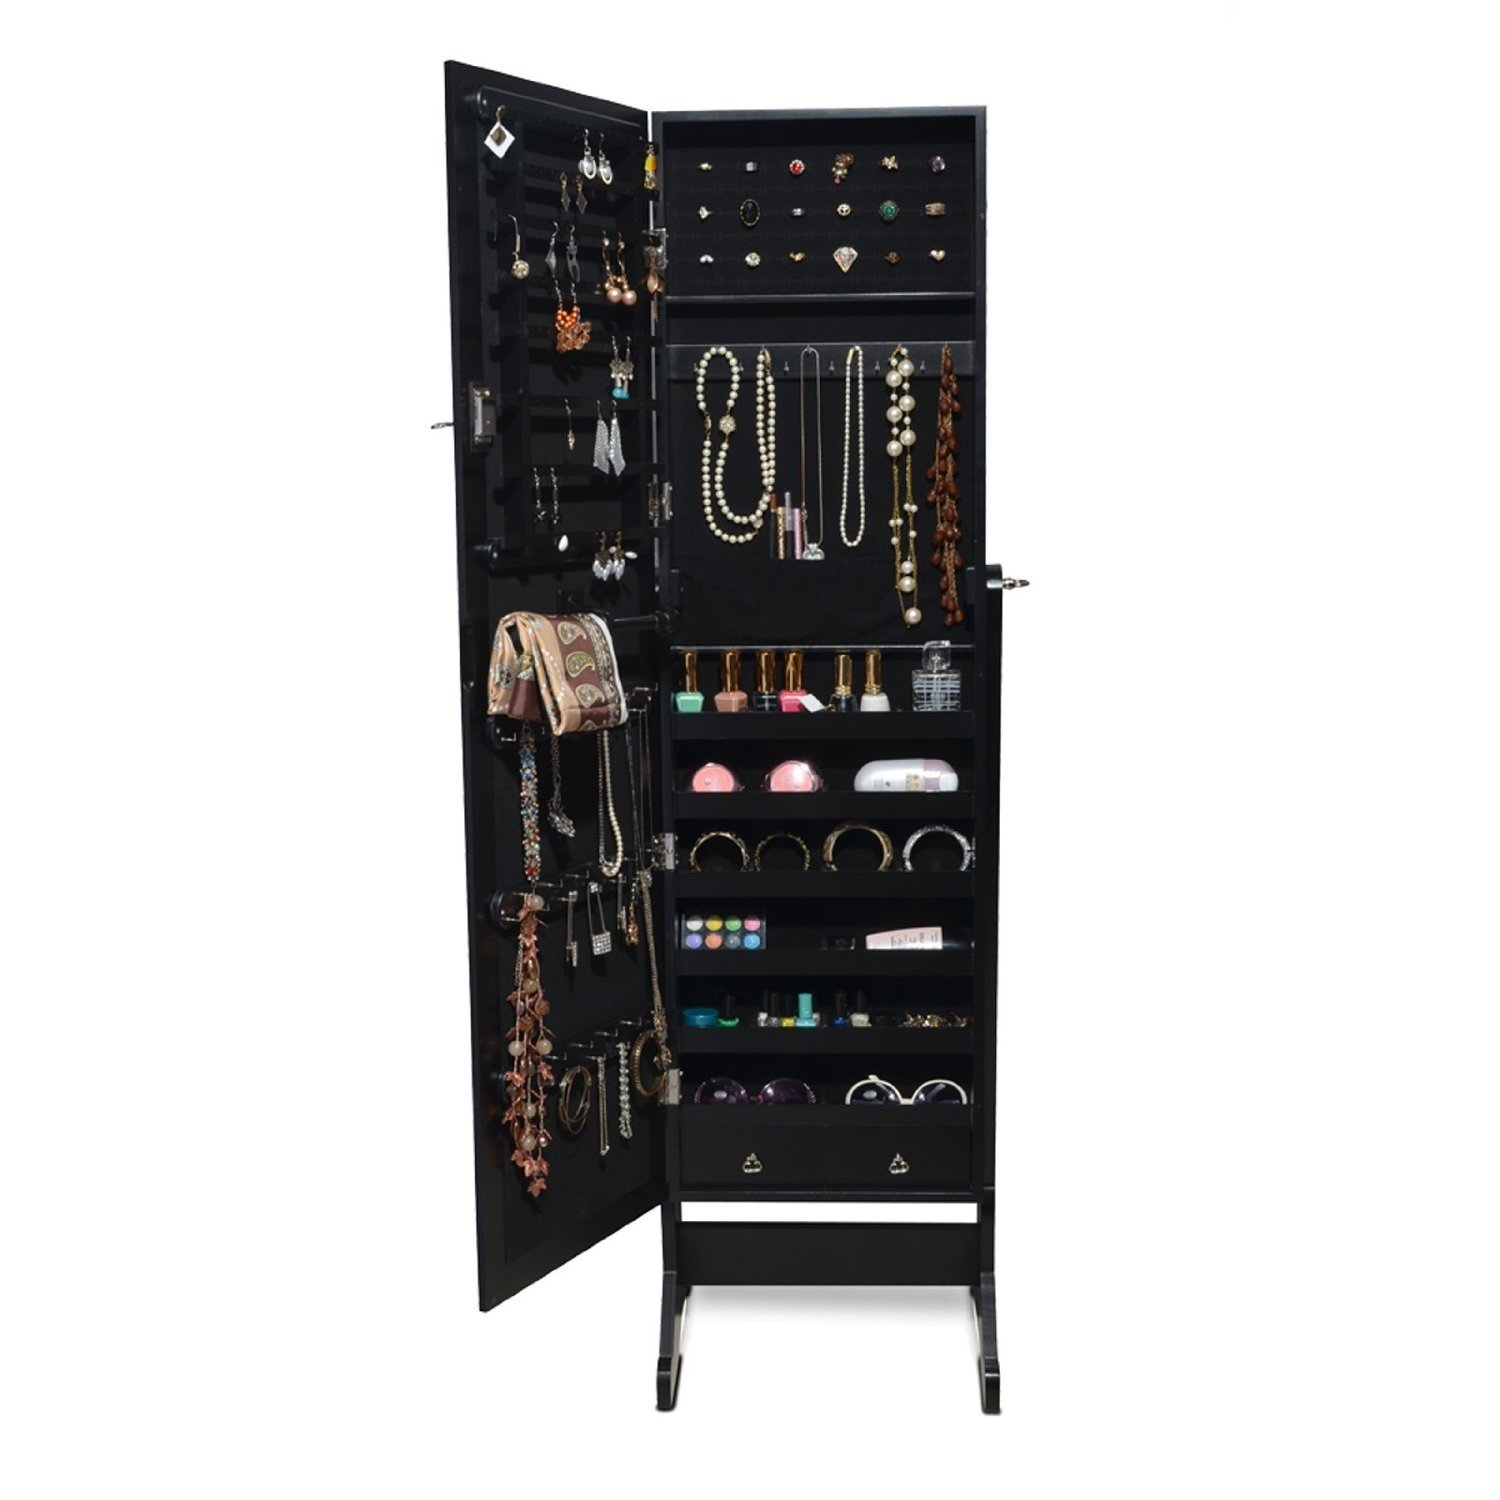 BTEXPERT Premium Stylish Wooden Jewelry Armoire Cabinet Stand Safe Lock Organizer Storage Cheval Mirror Rings, Necklaces, Bracelets Black by BTEXPERT